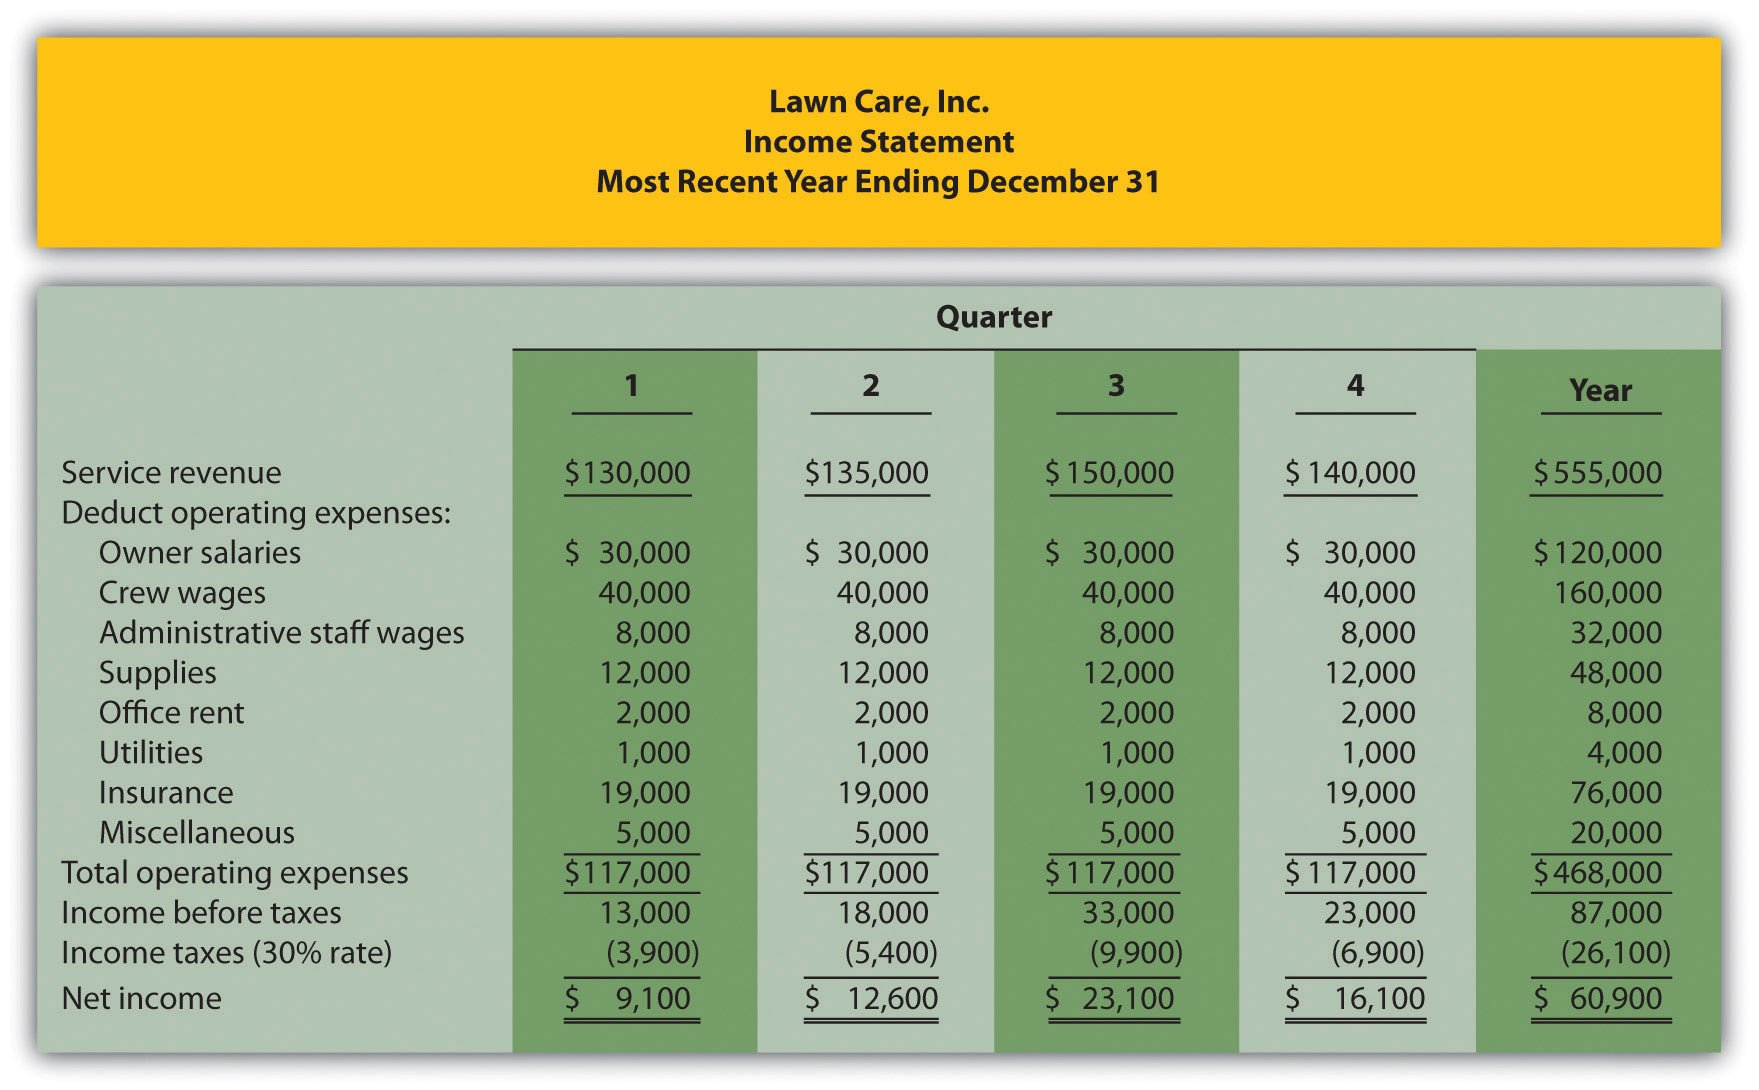 Lawn Care Business Expenses Spreadsheet How are Operating Bud S Created